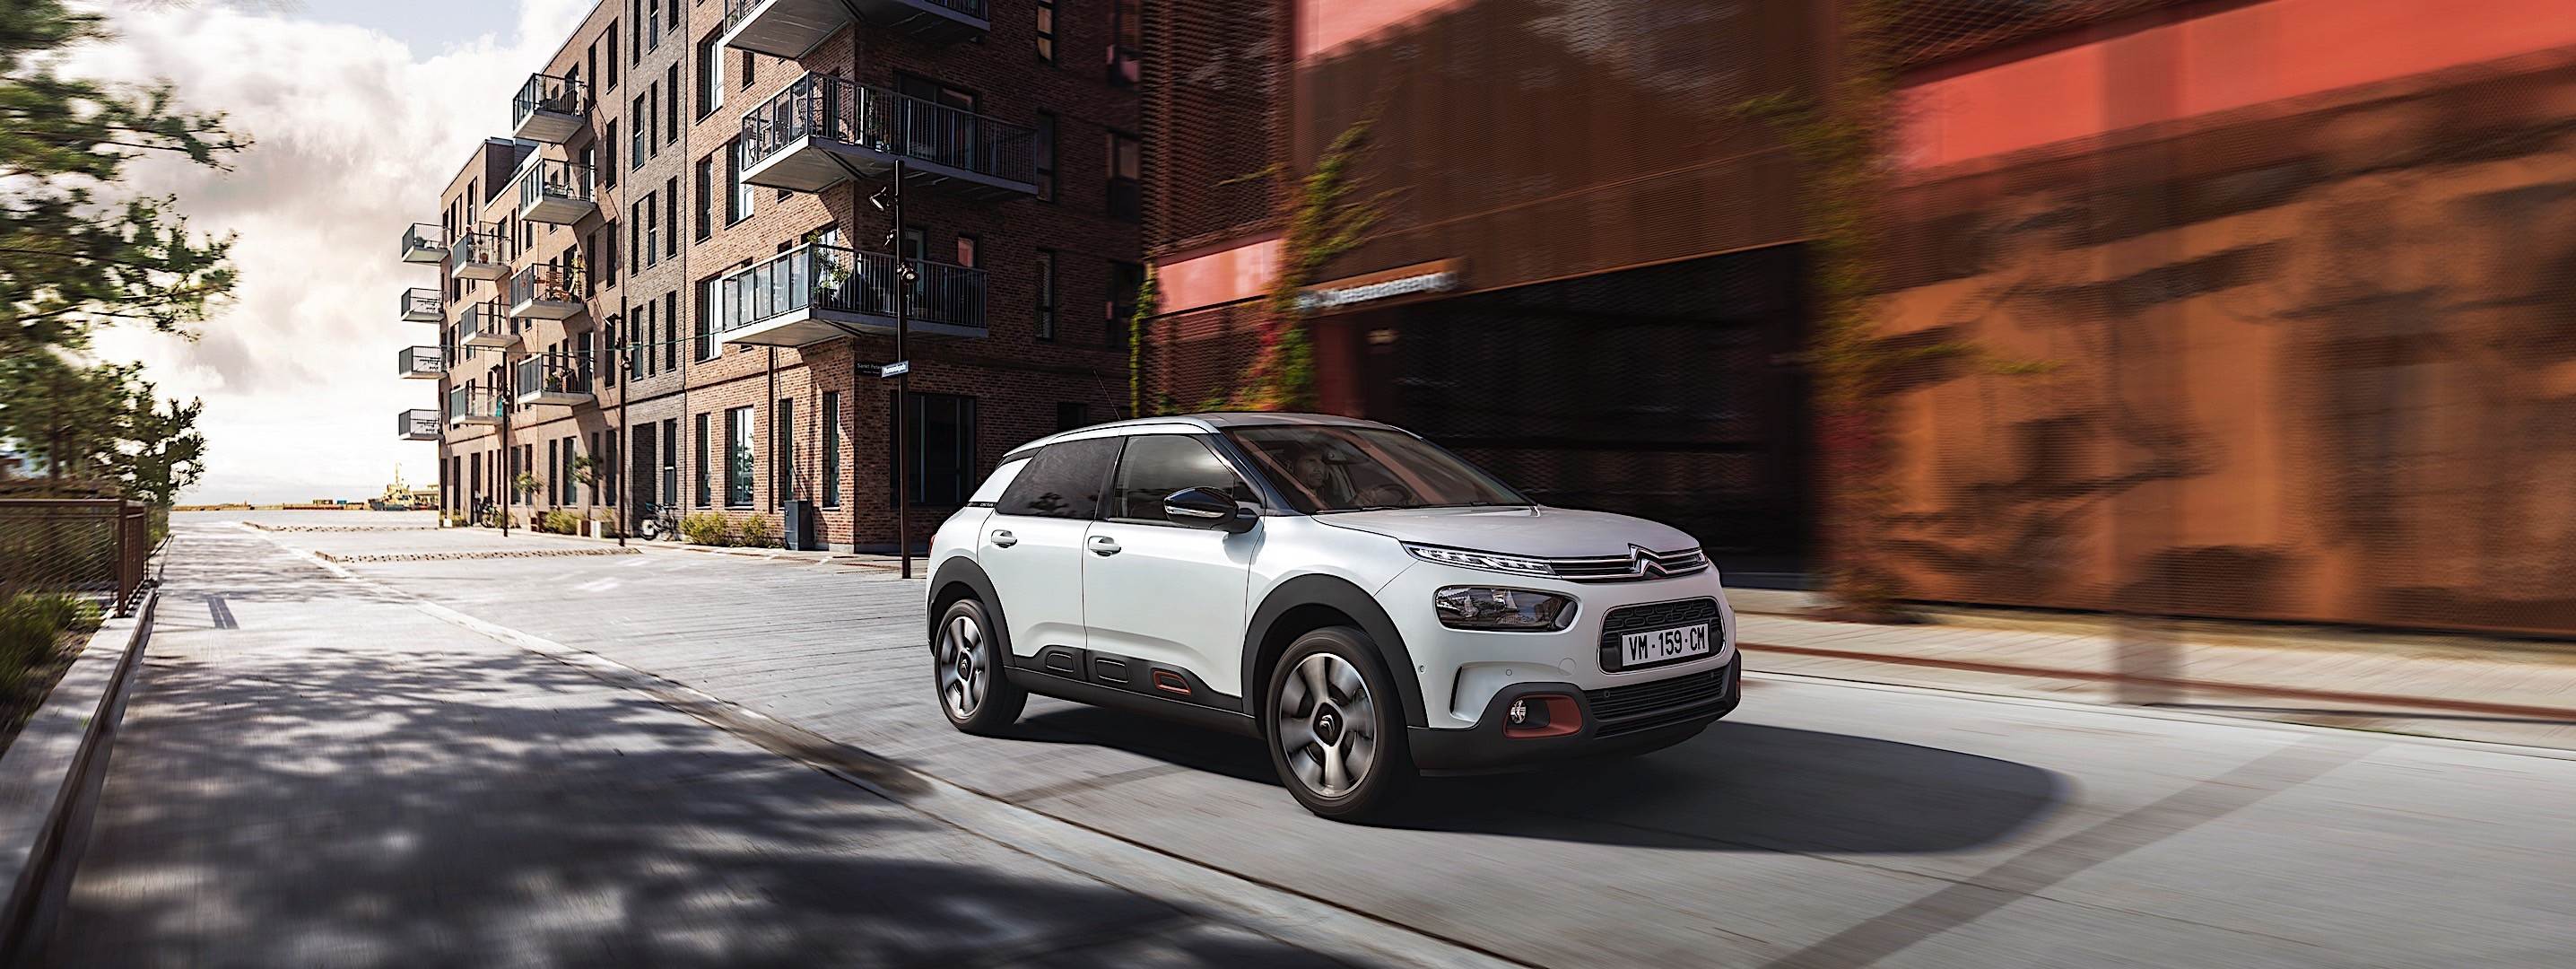 citroen c4 cactus specs 2018 autoevolution. Black Bedroom Furniture Sets. Home Design Ideas